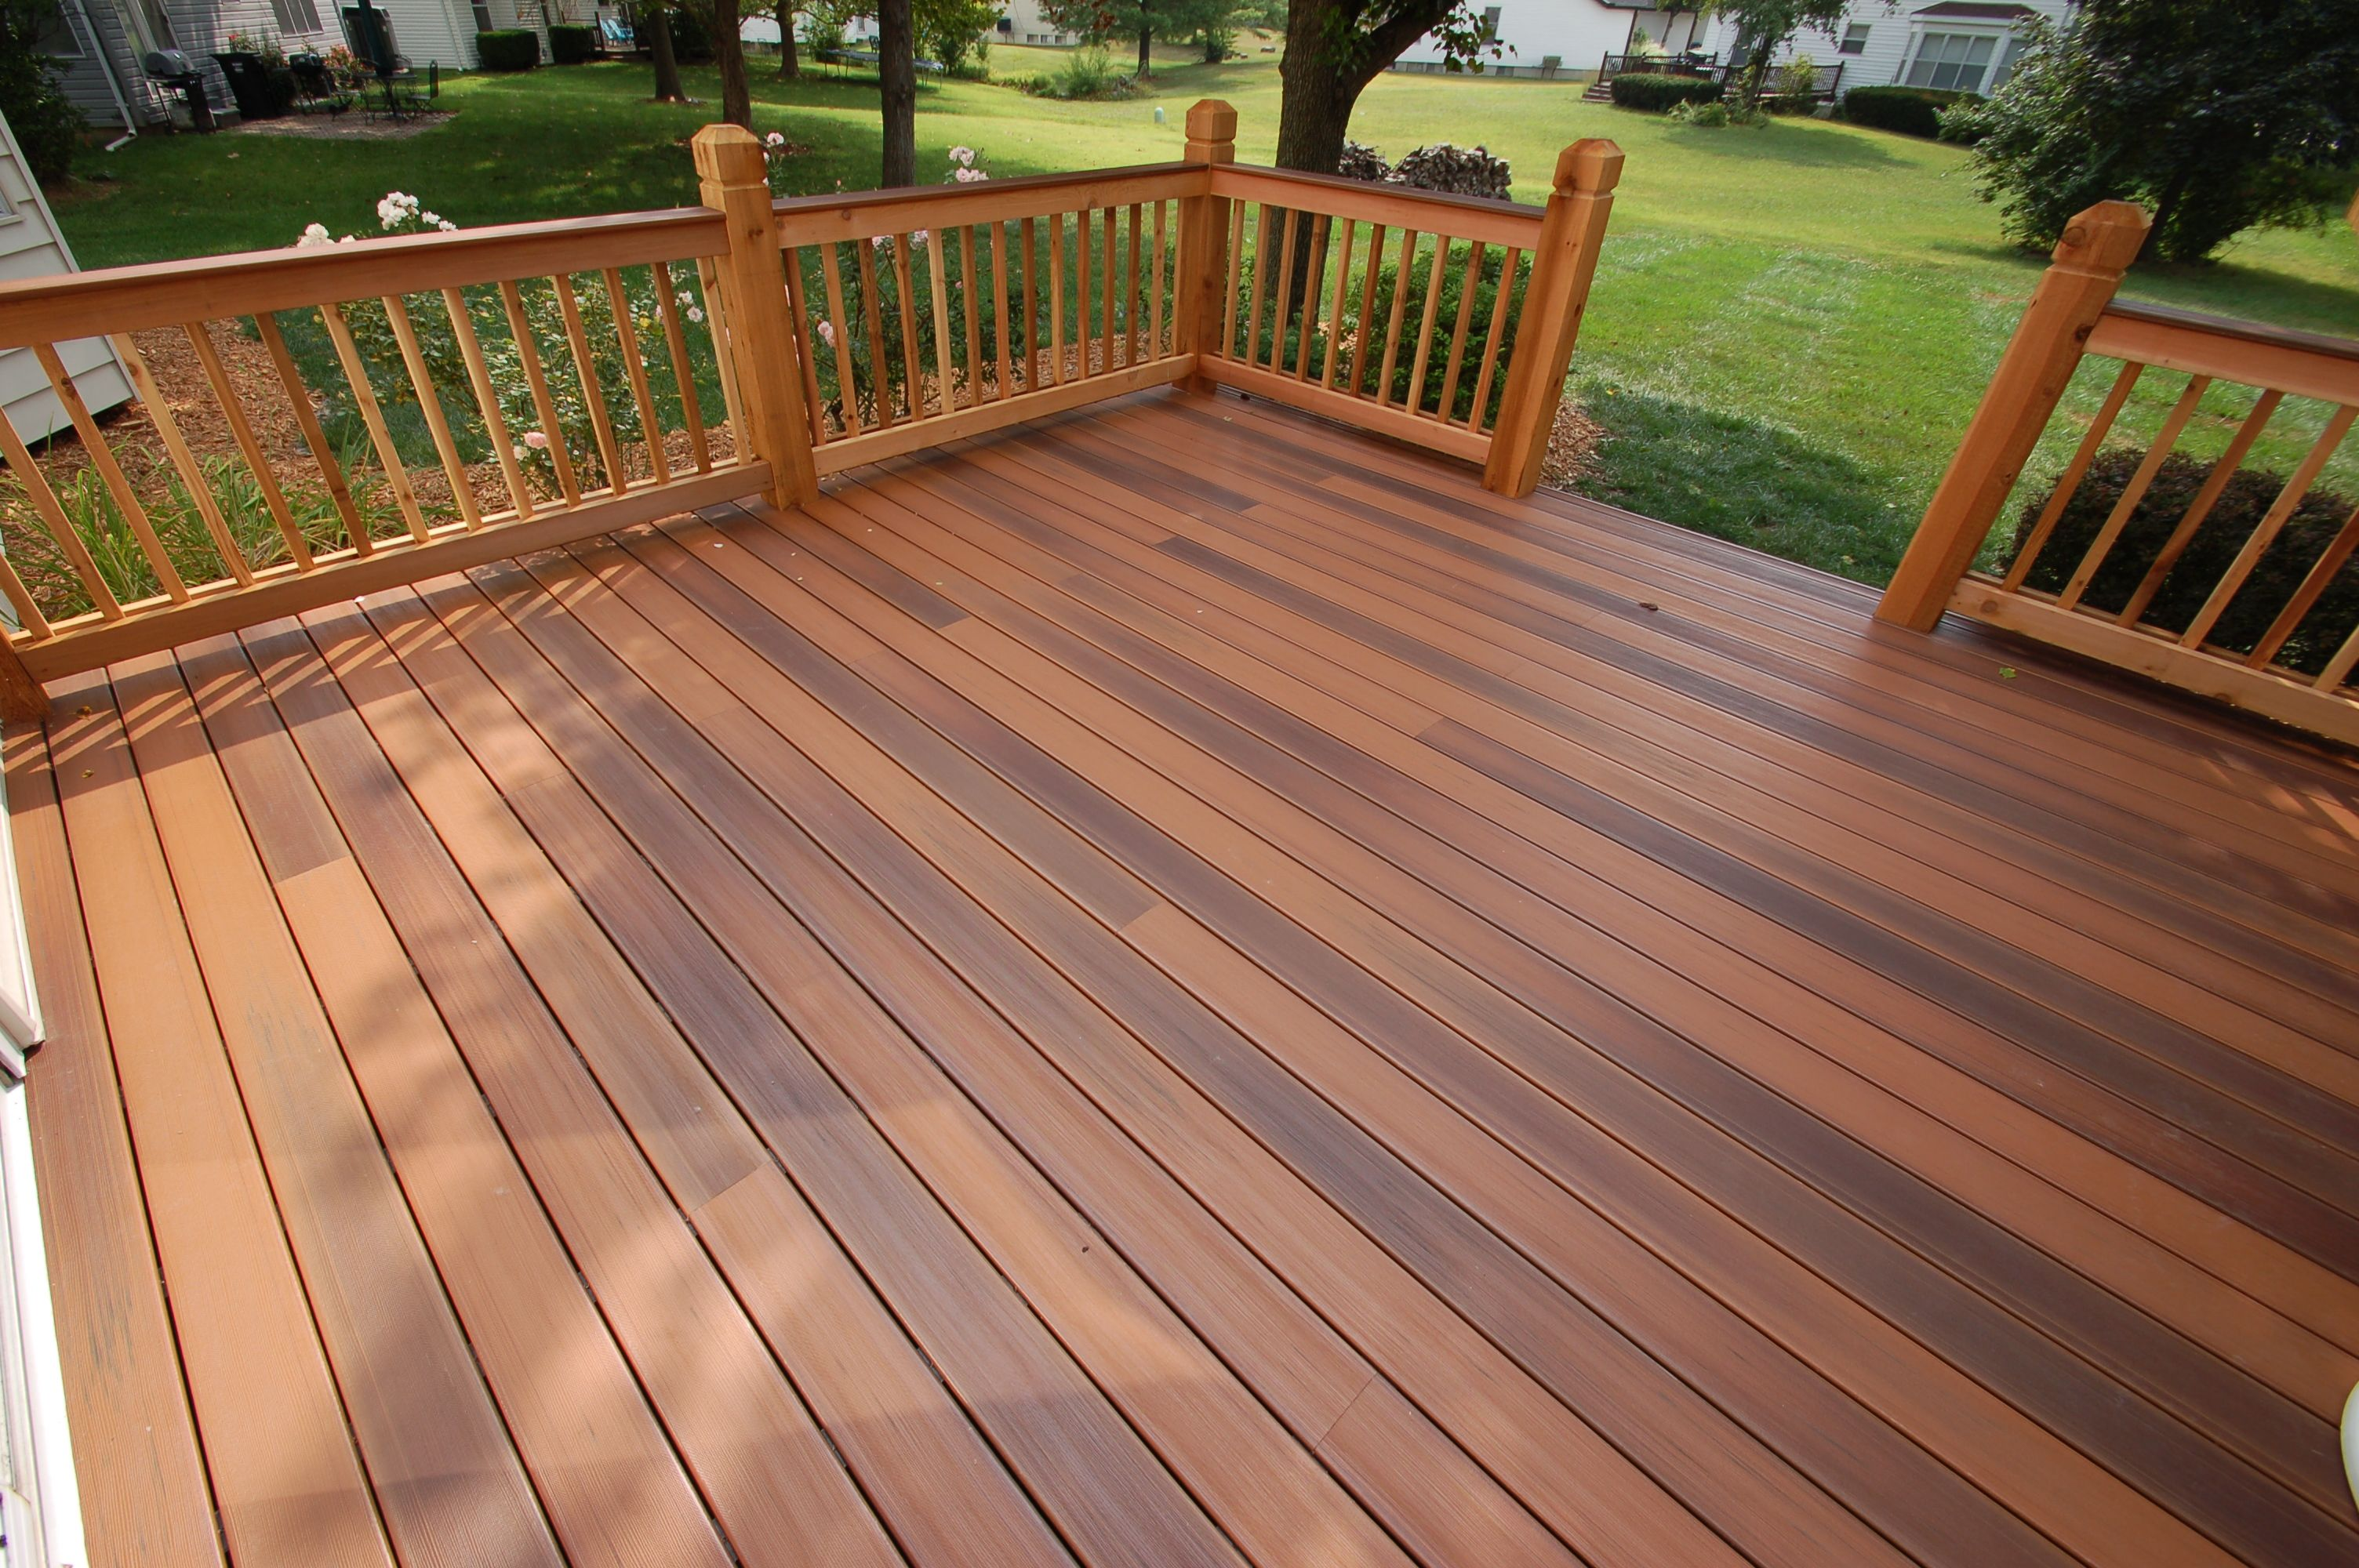 Duralife brazilian cherry decking decking pinterest for Outdoor composite decking